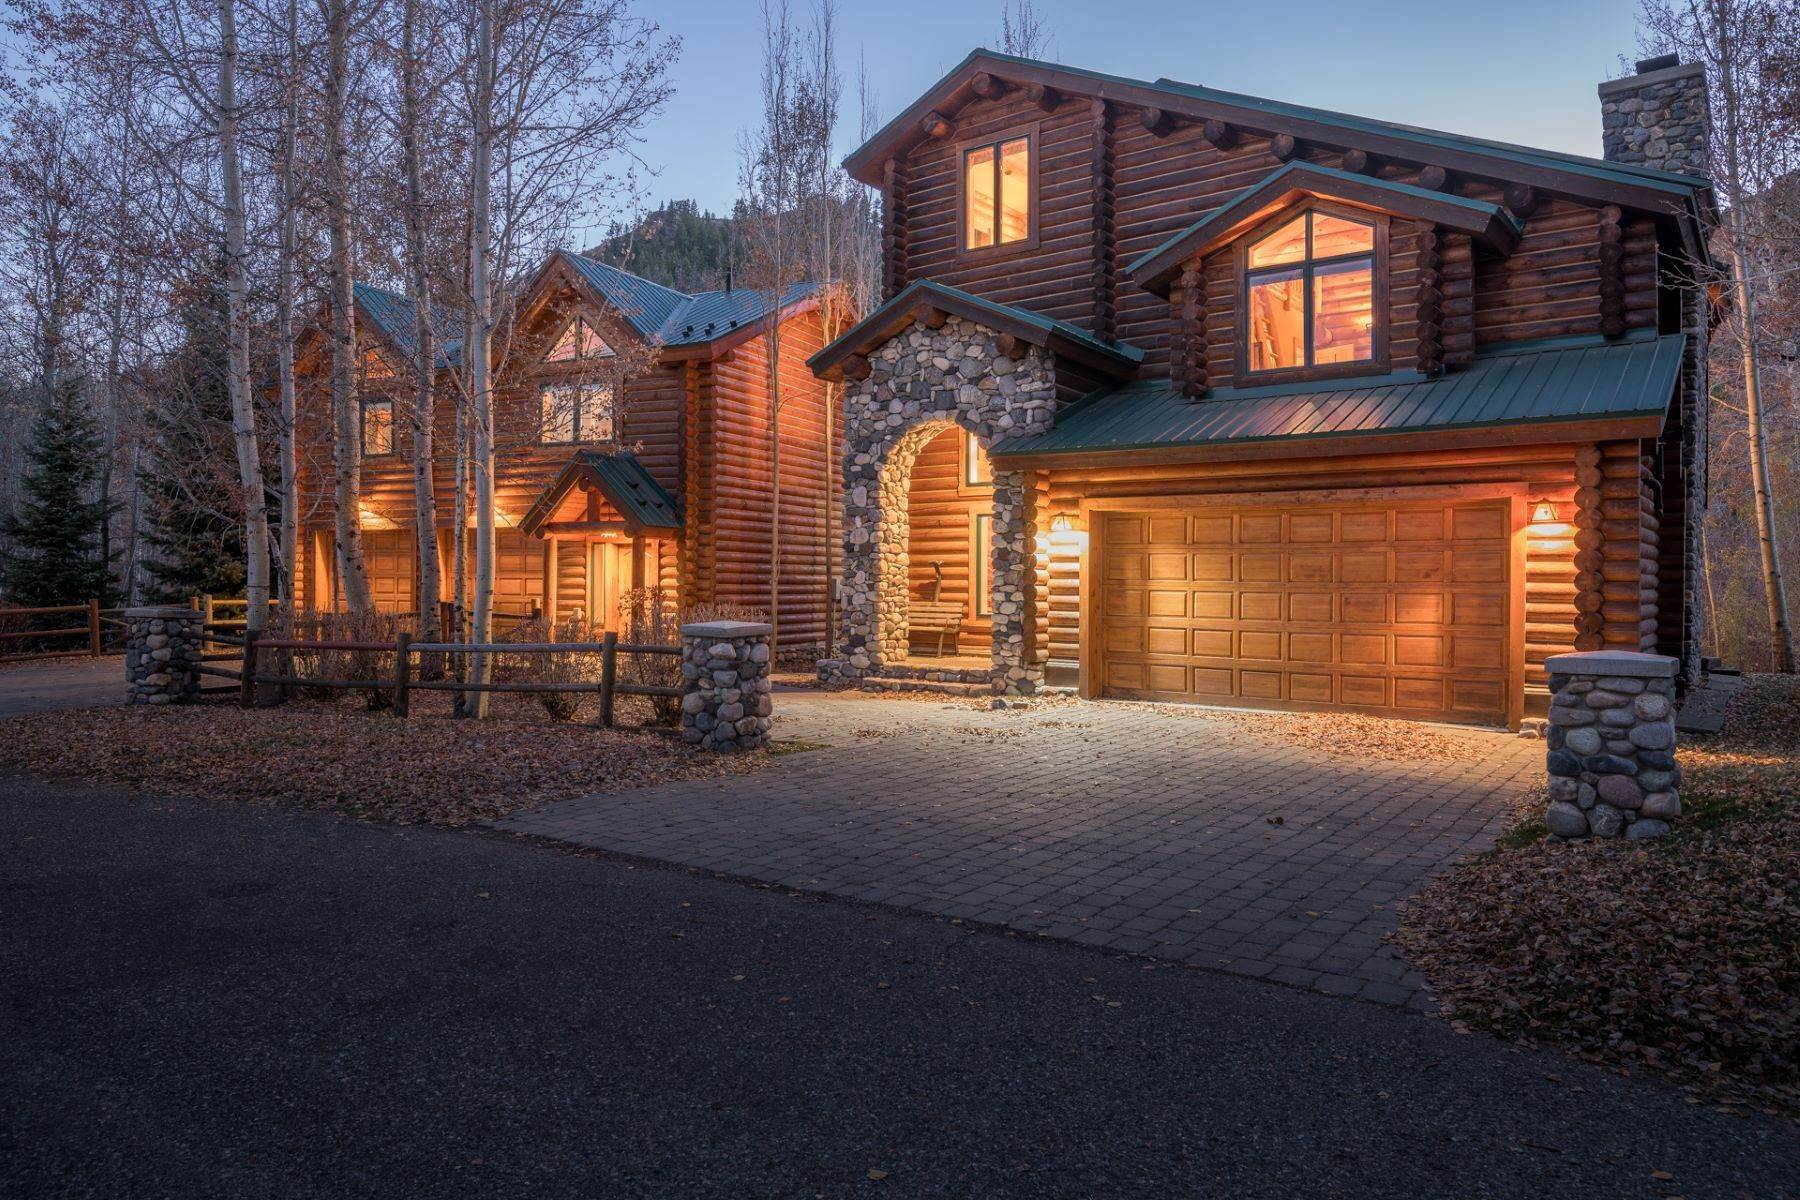 Single Family Homes for Sale at Rarely Available and Highly Desirable Riverfront Home 217 Eagle Creek Loop, Ketchum, Idaho, 83340 United States